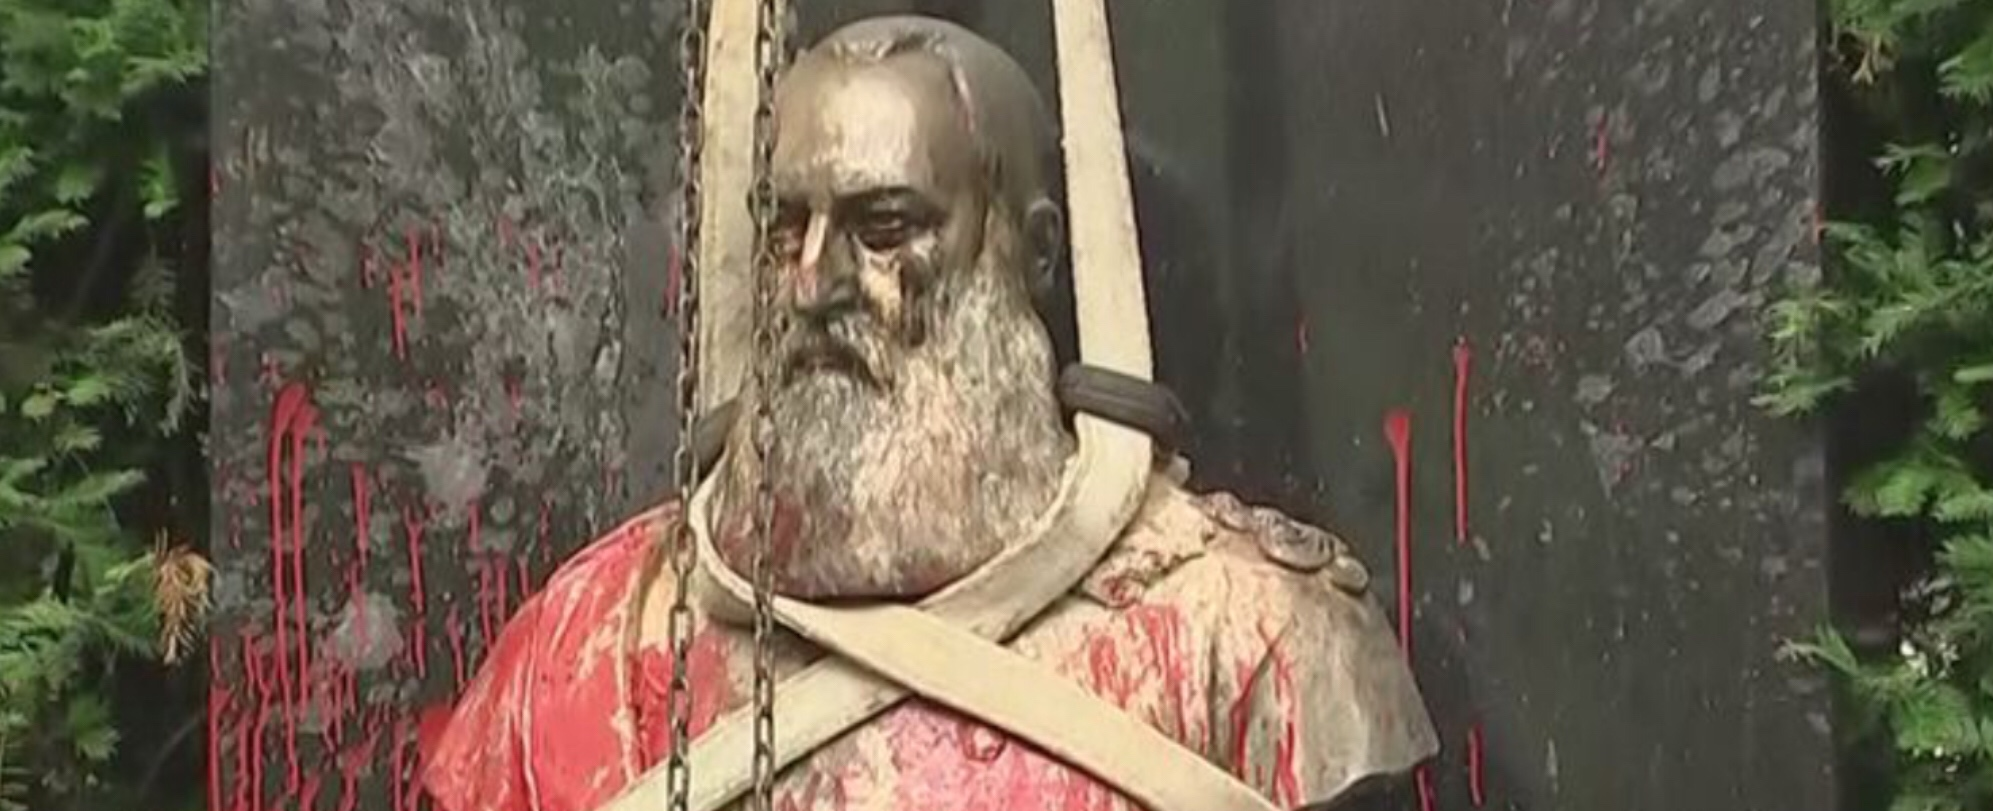 Ghent removes Leopold II bust